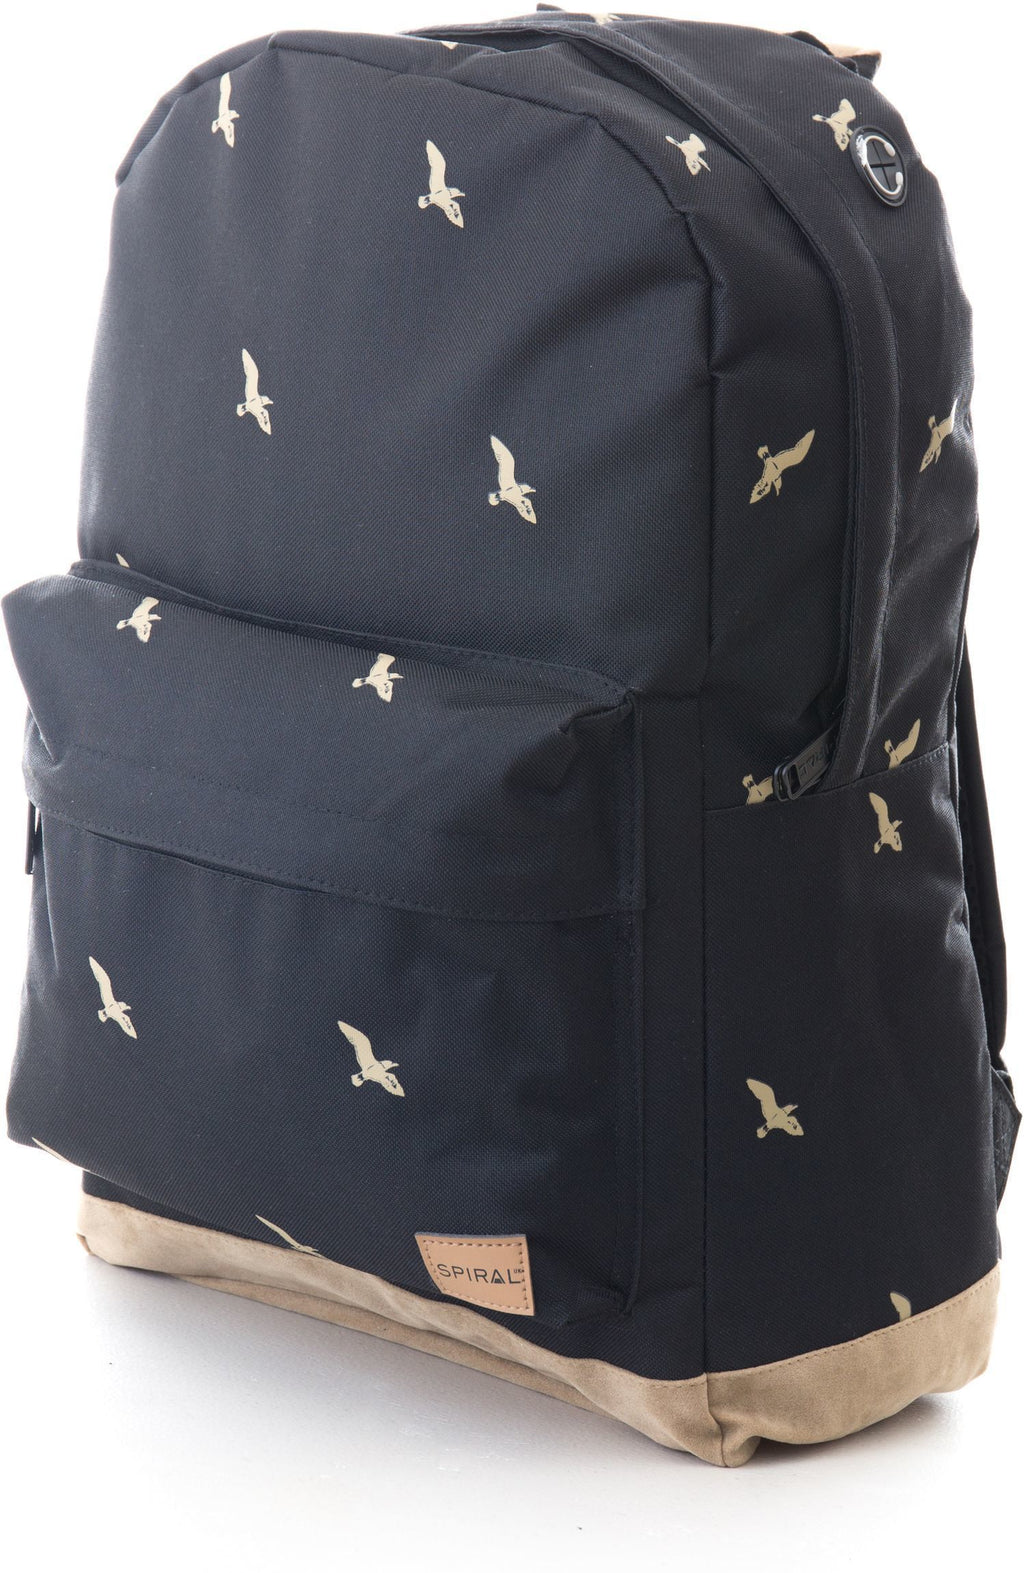 Spiral Bird Print OG Backpack Rucksack Bag Black